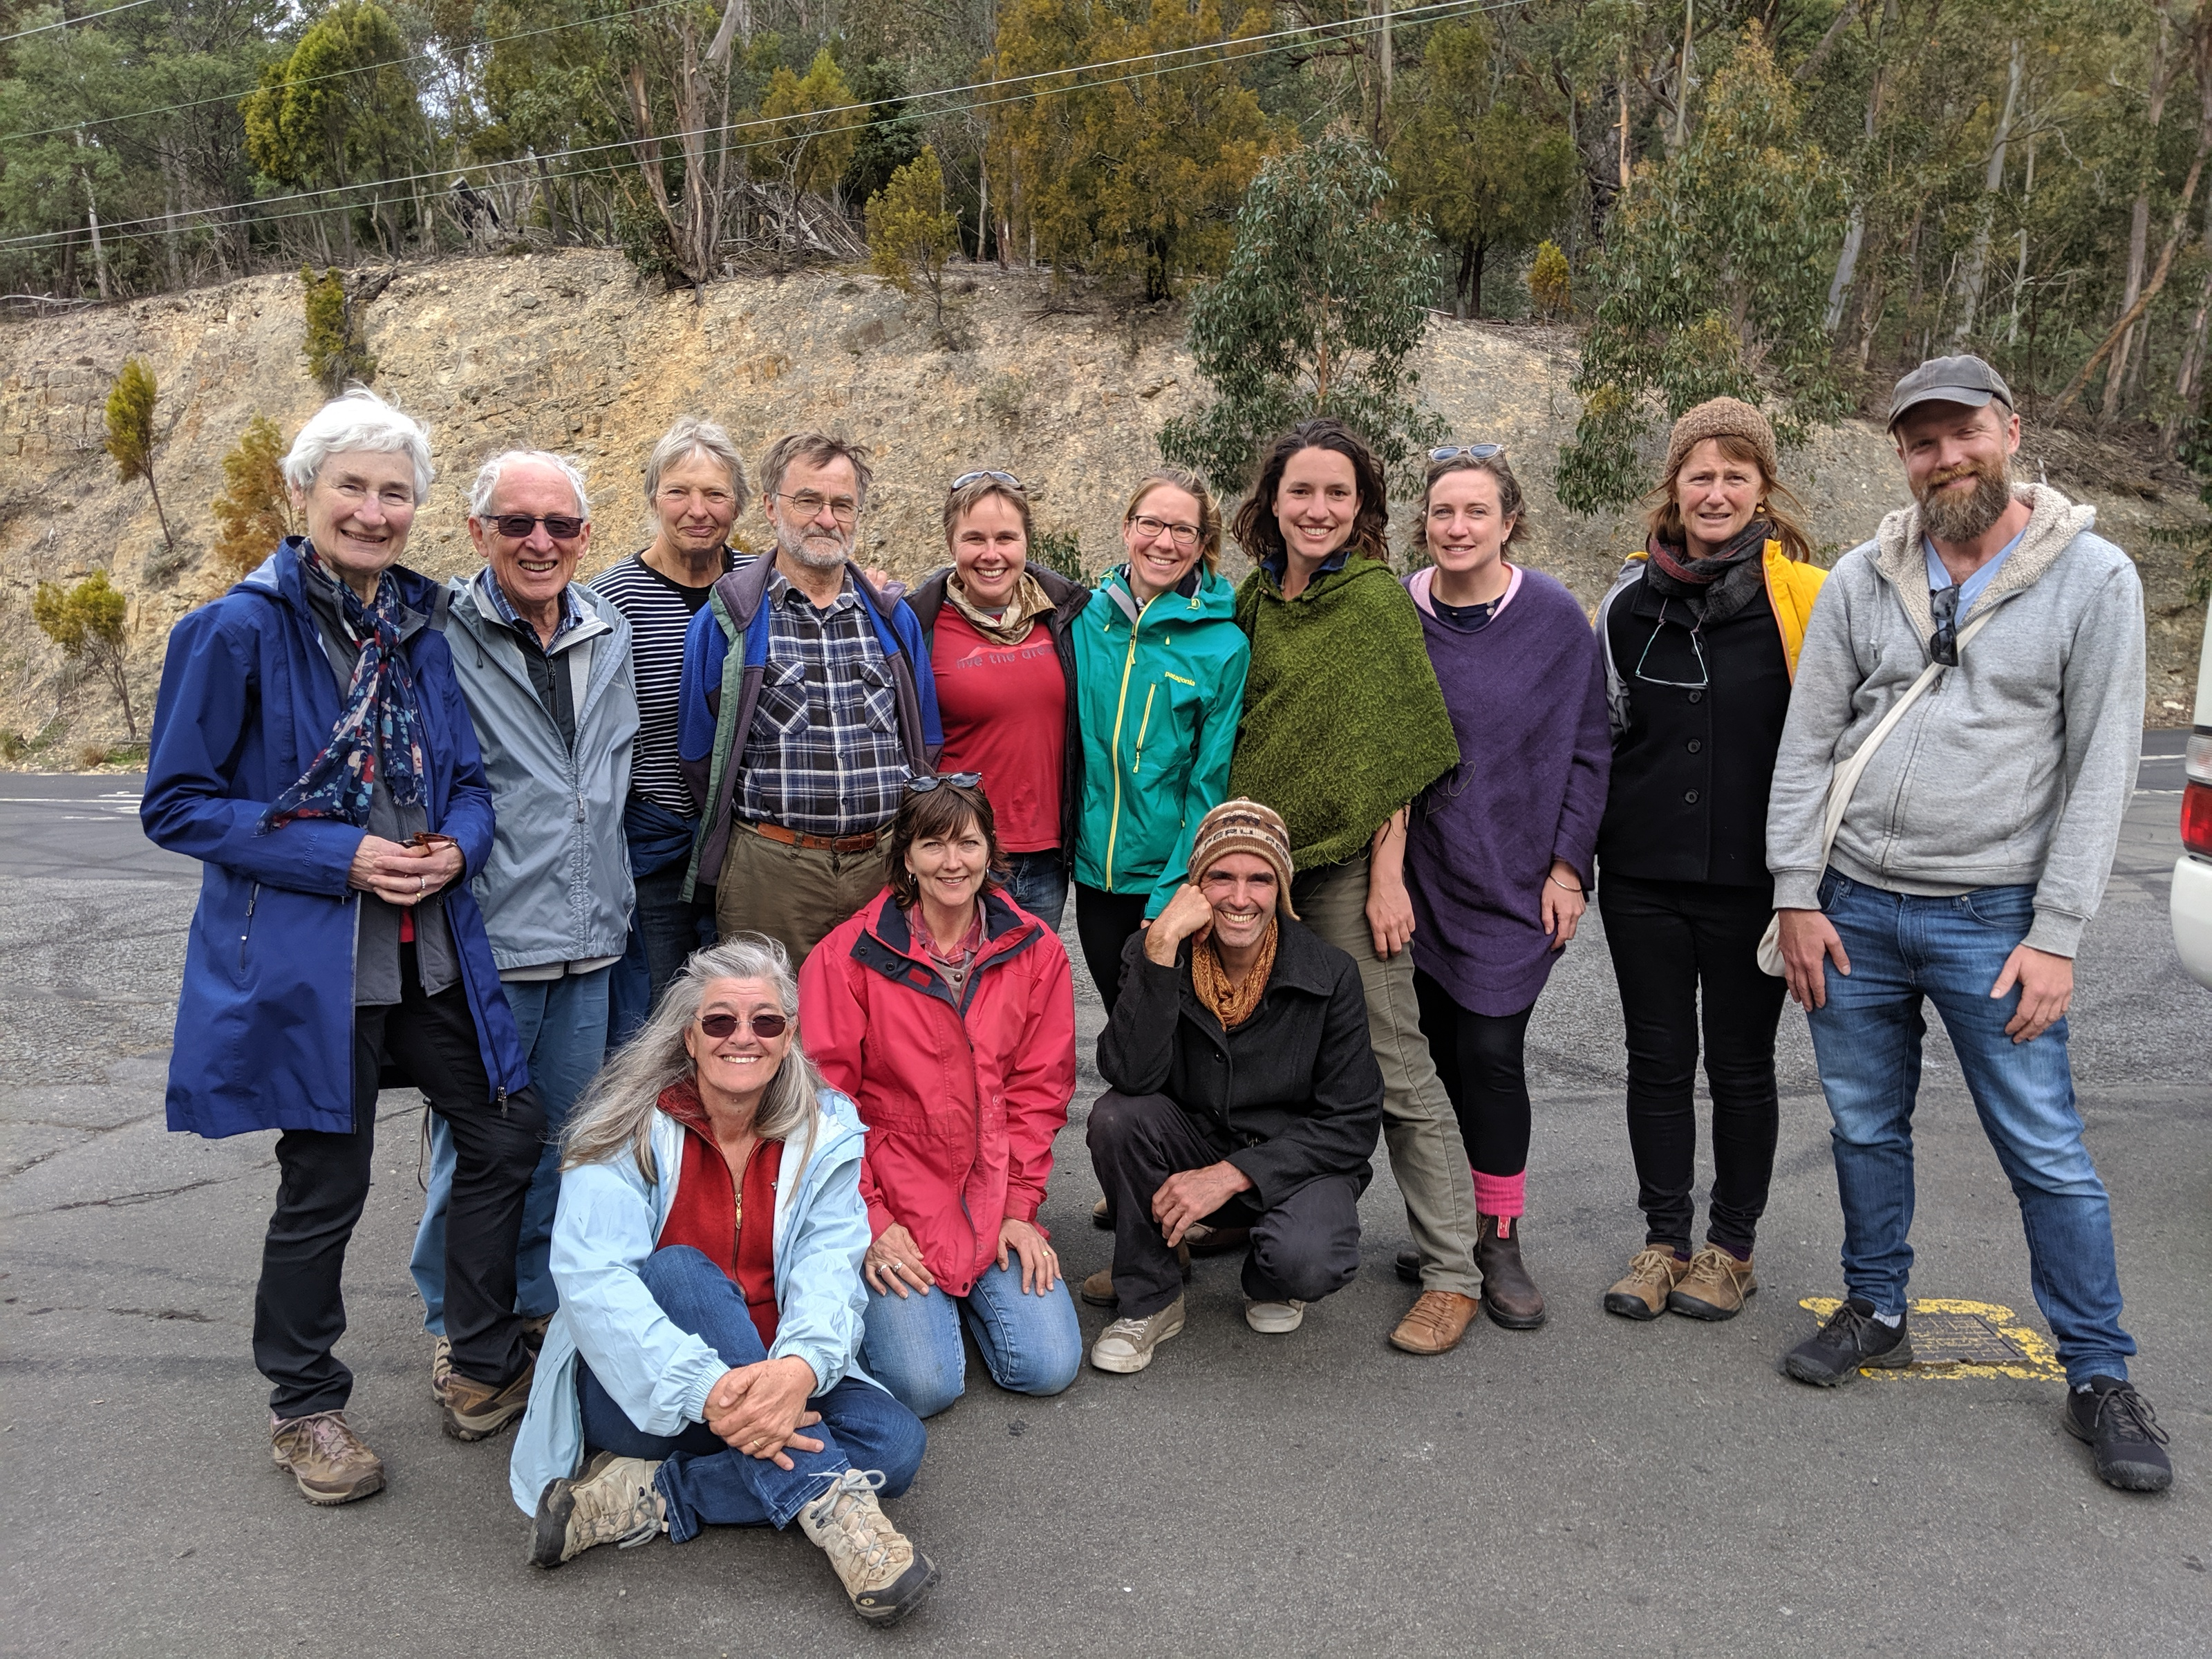 20191027_conf19_Fieldtrip_Huon_Valley_©Kat_Traill_9.jpg